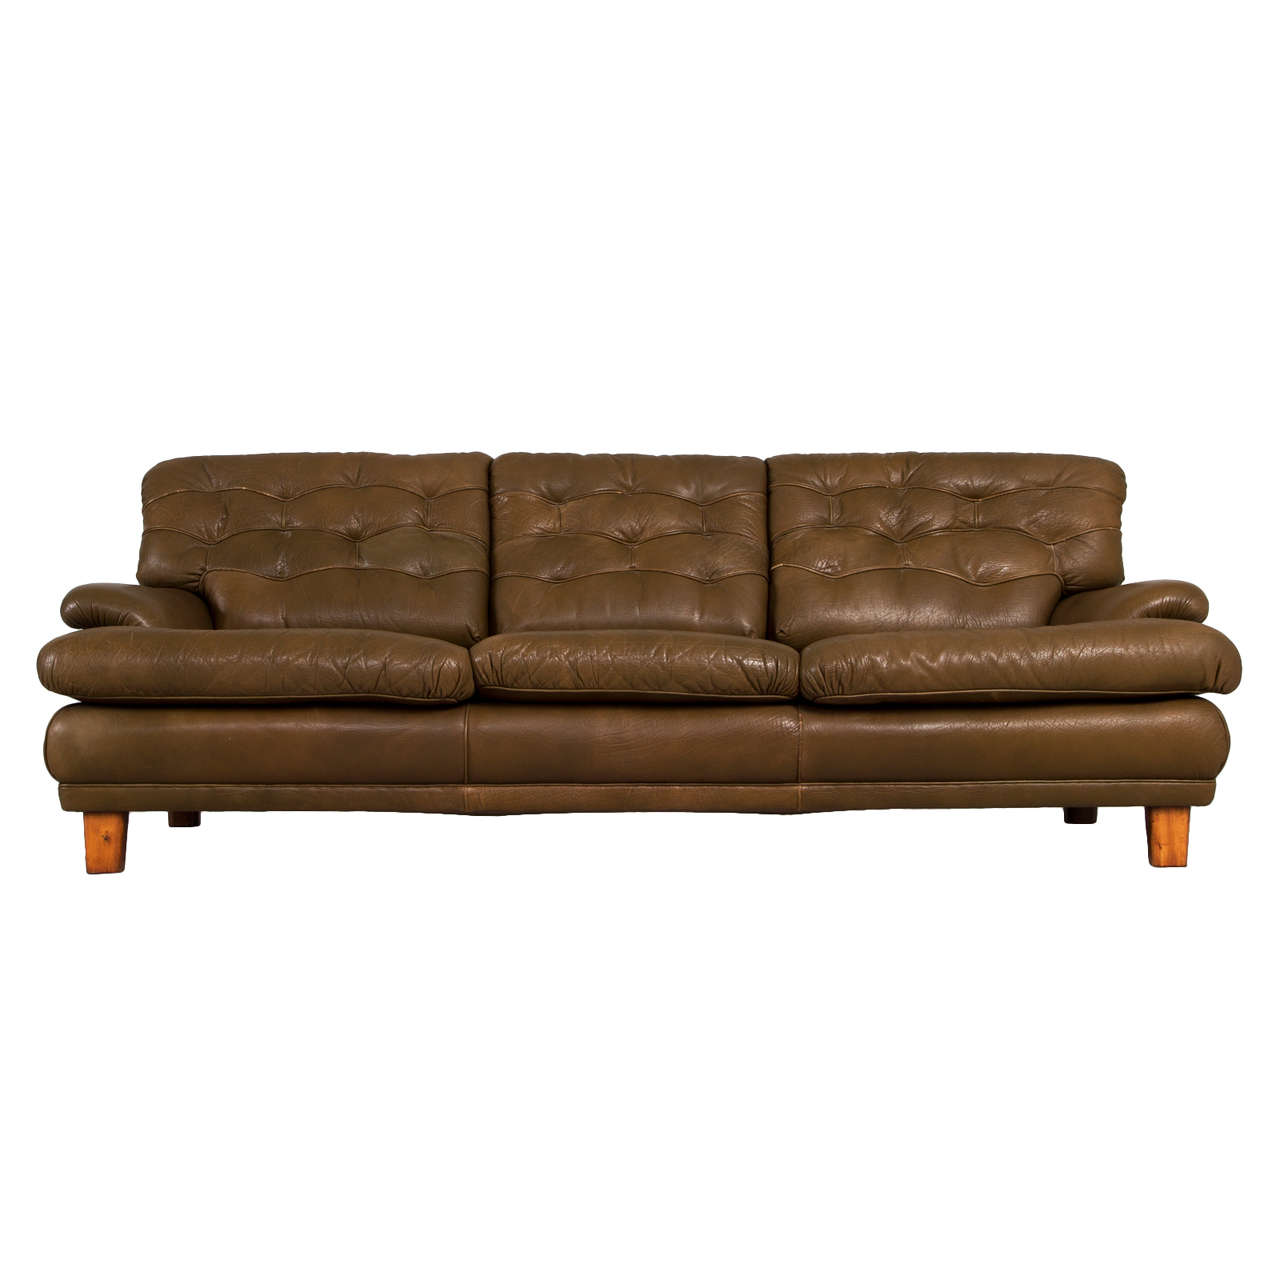 Three Seat Sofa With Green Leather By Arne Norell For Sale At 1stdibs